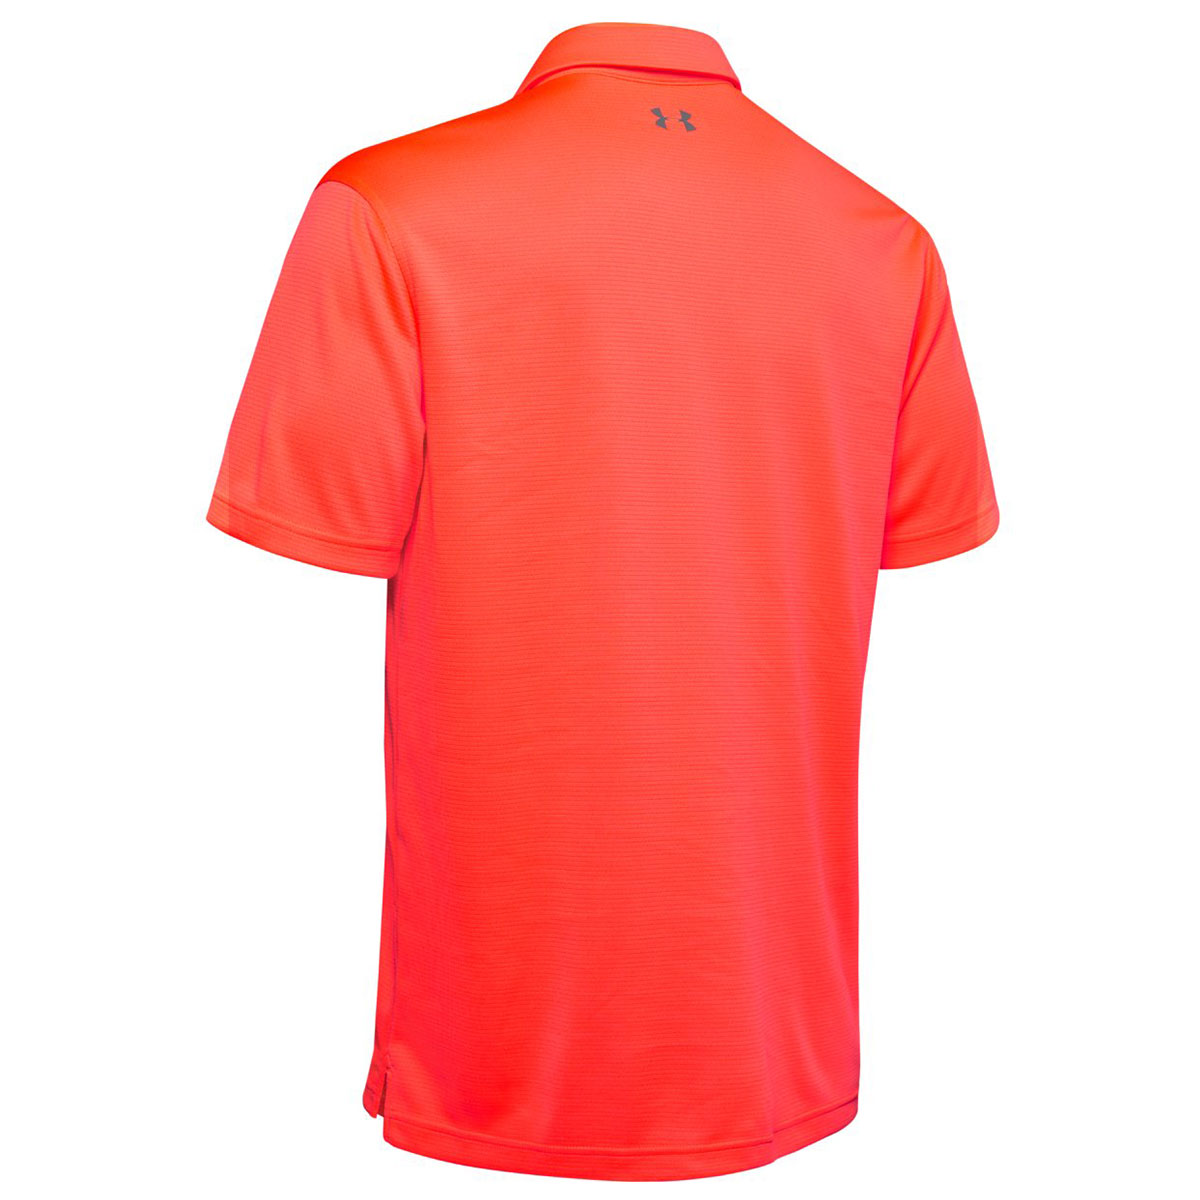 Under-Armour-Mens-2019-Golf-Tech-Wicking-Textured-Soft-Light-Polo-Shirt thumbnail 17